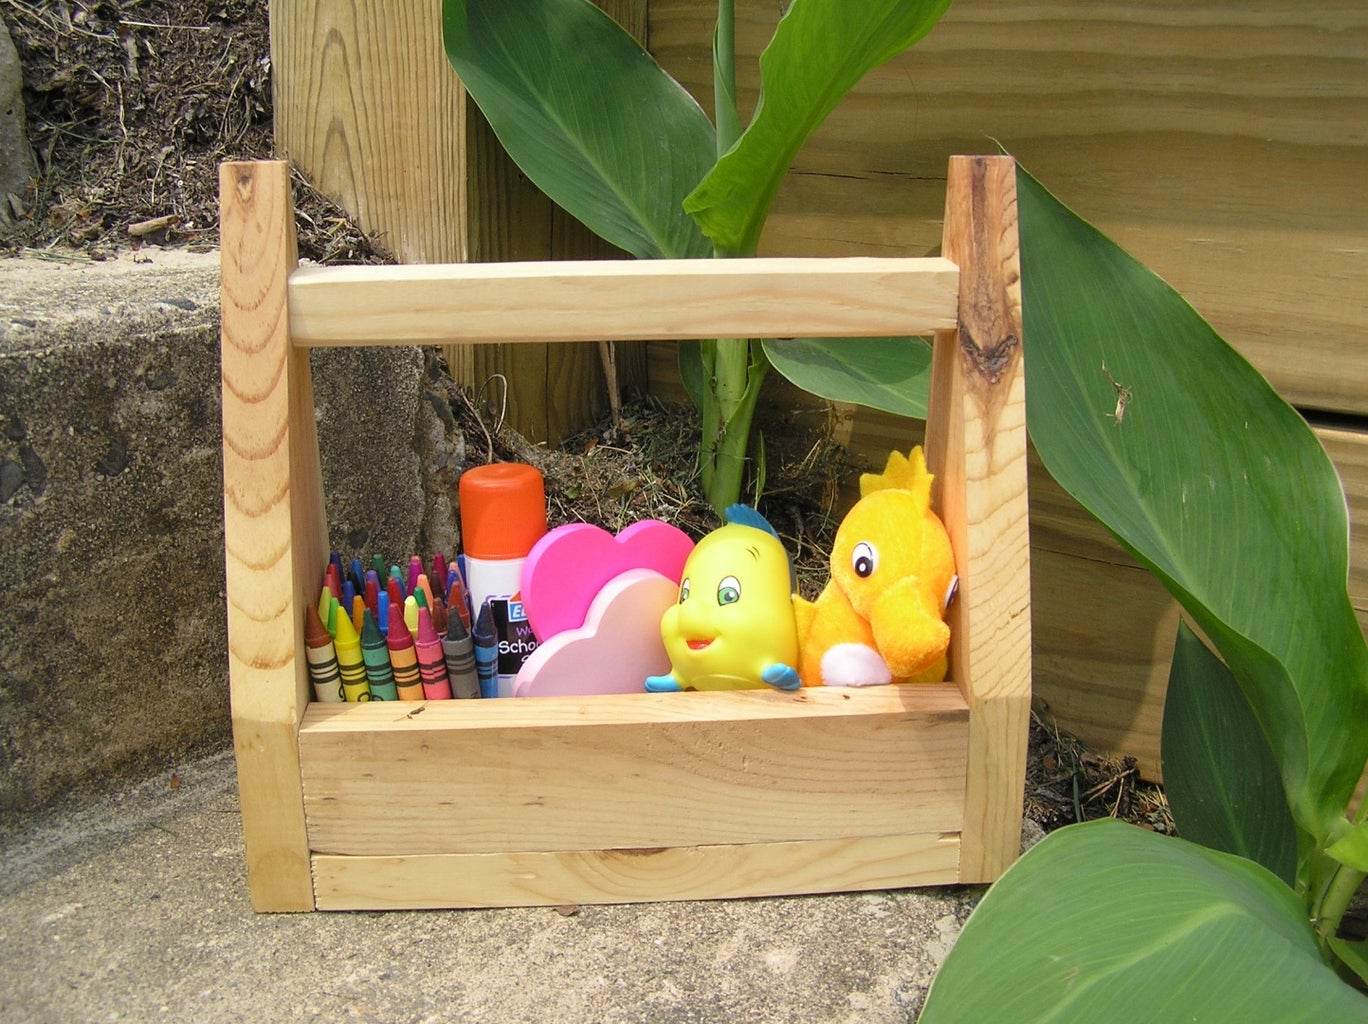 Kid's Toolbox: Great for Toting Toys and Tools